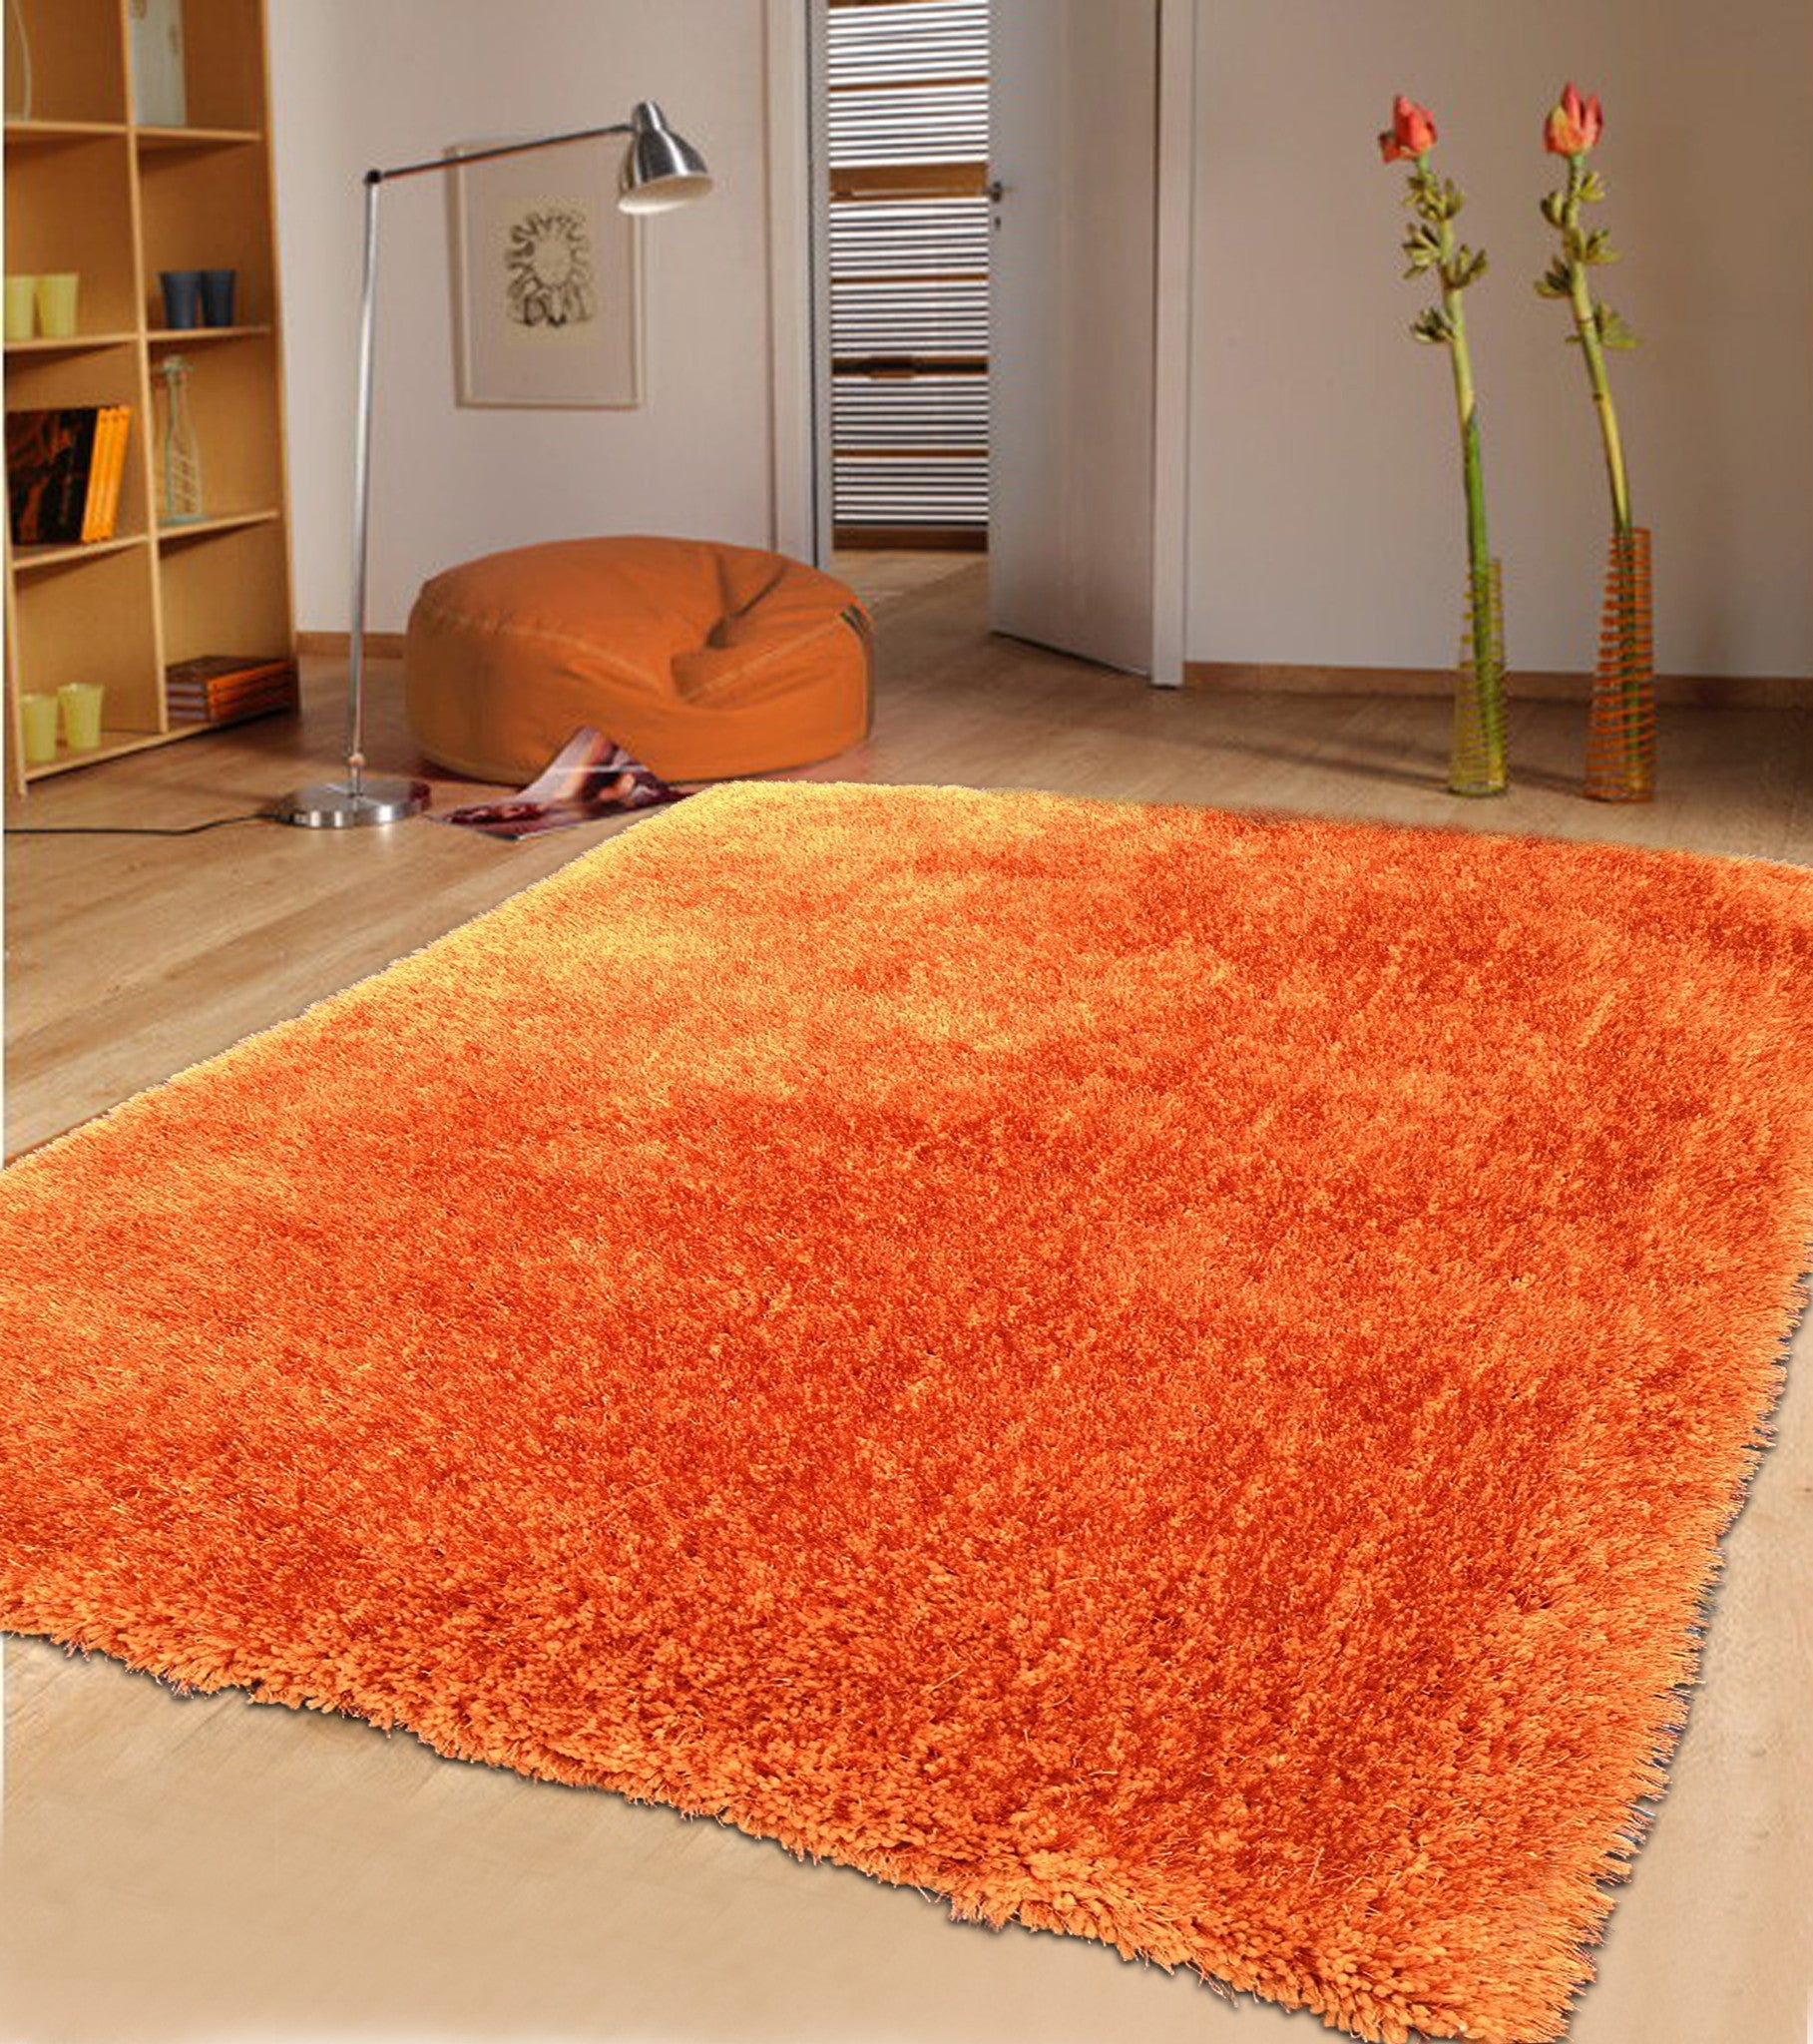 throw admirable bedroom living shag rugs sale room cheap fluffy fur king shaggy leather area great blue rug for carpet long large cover western flooring home plush